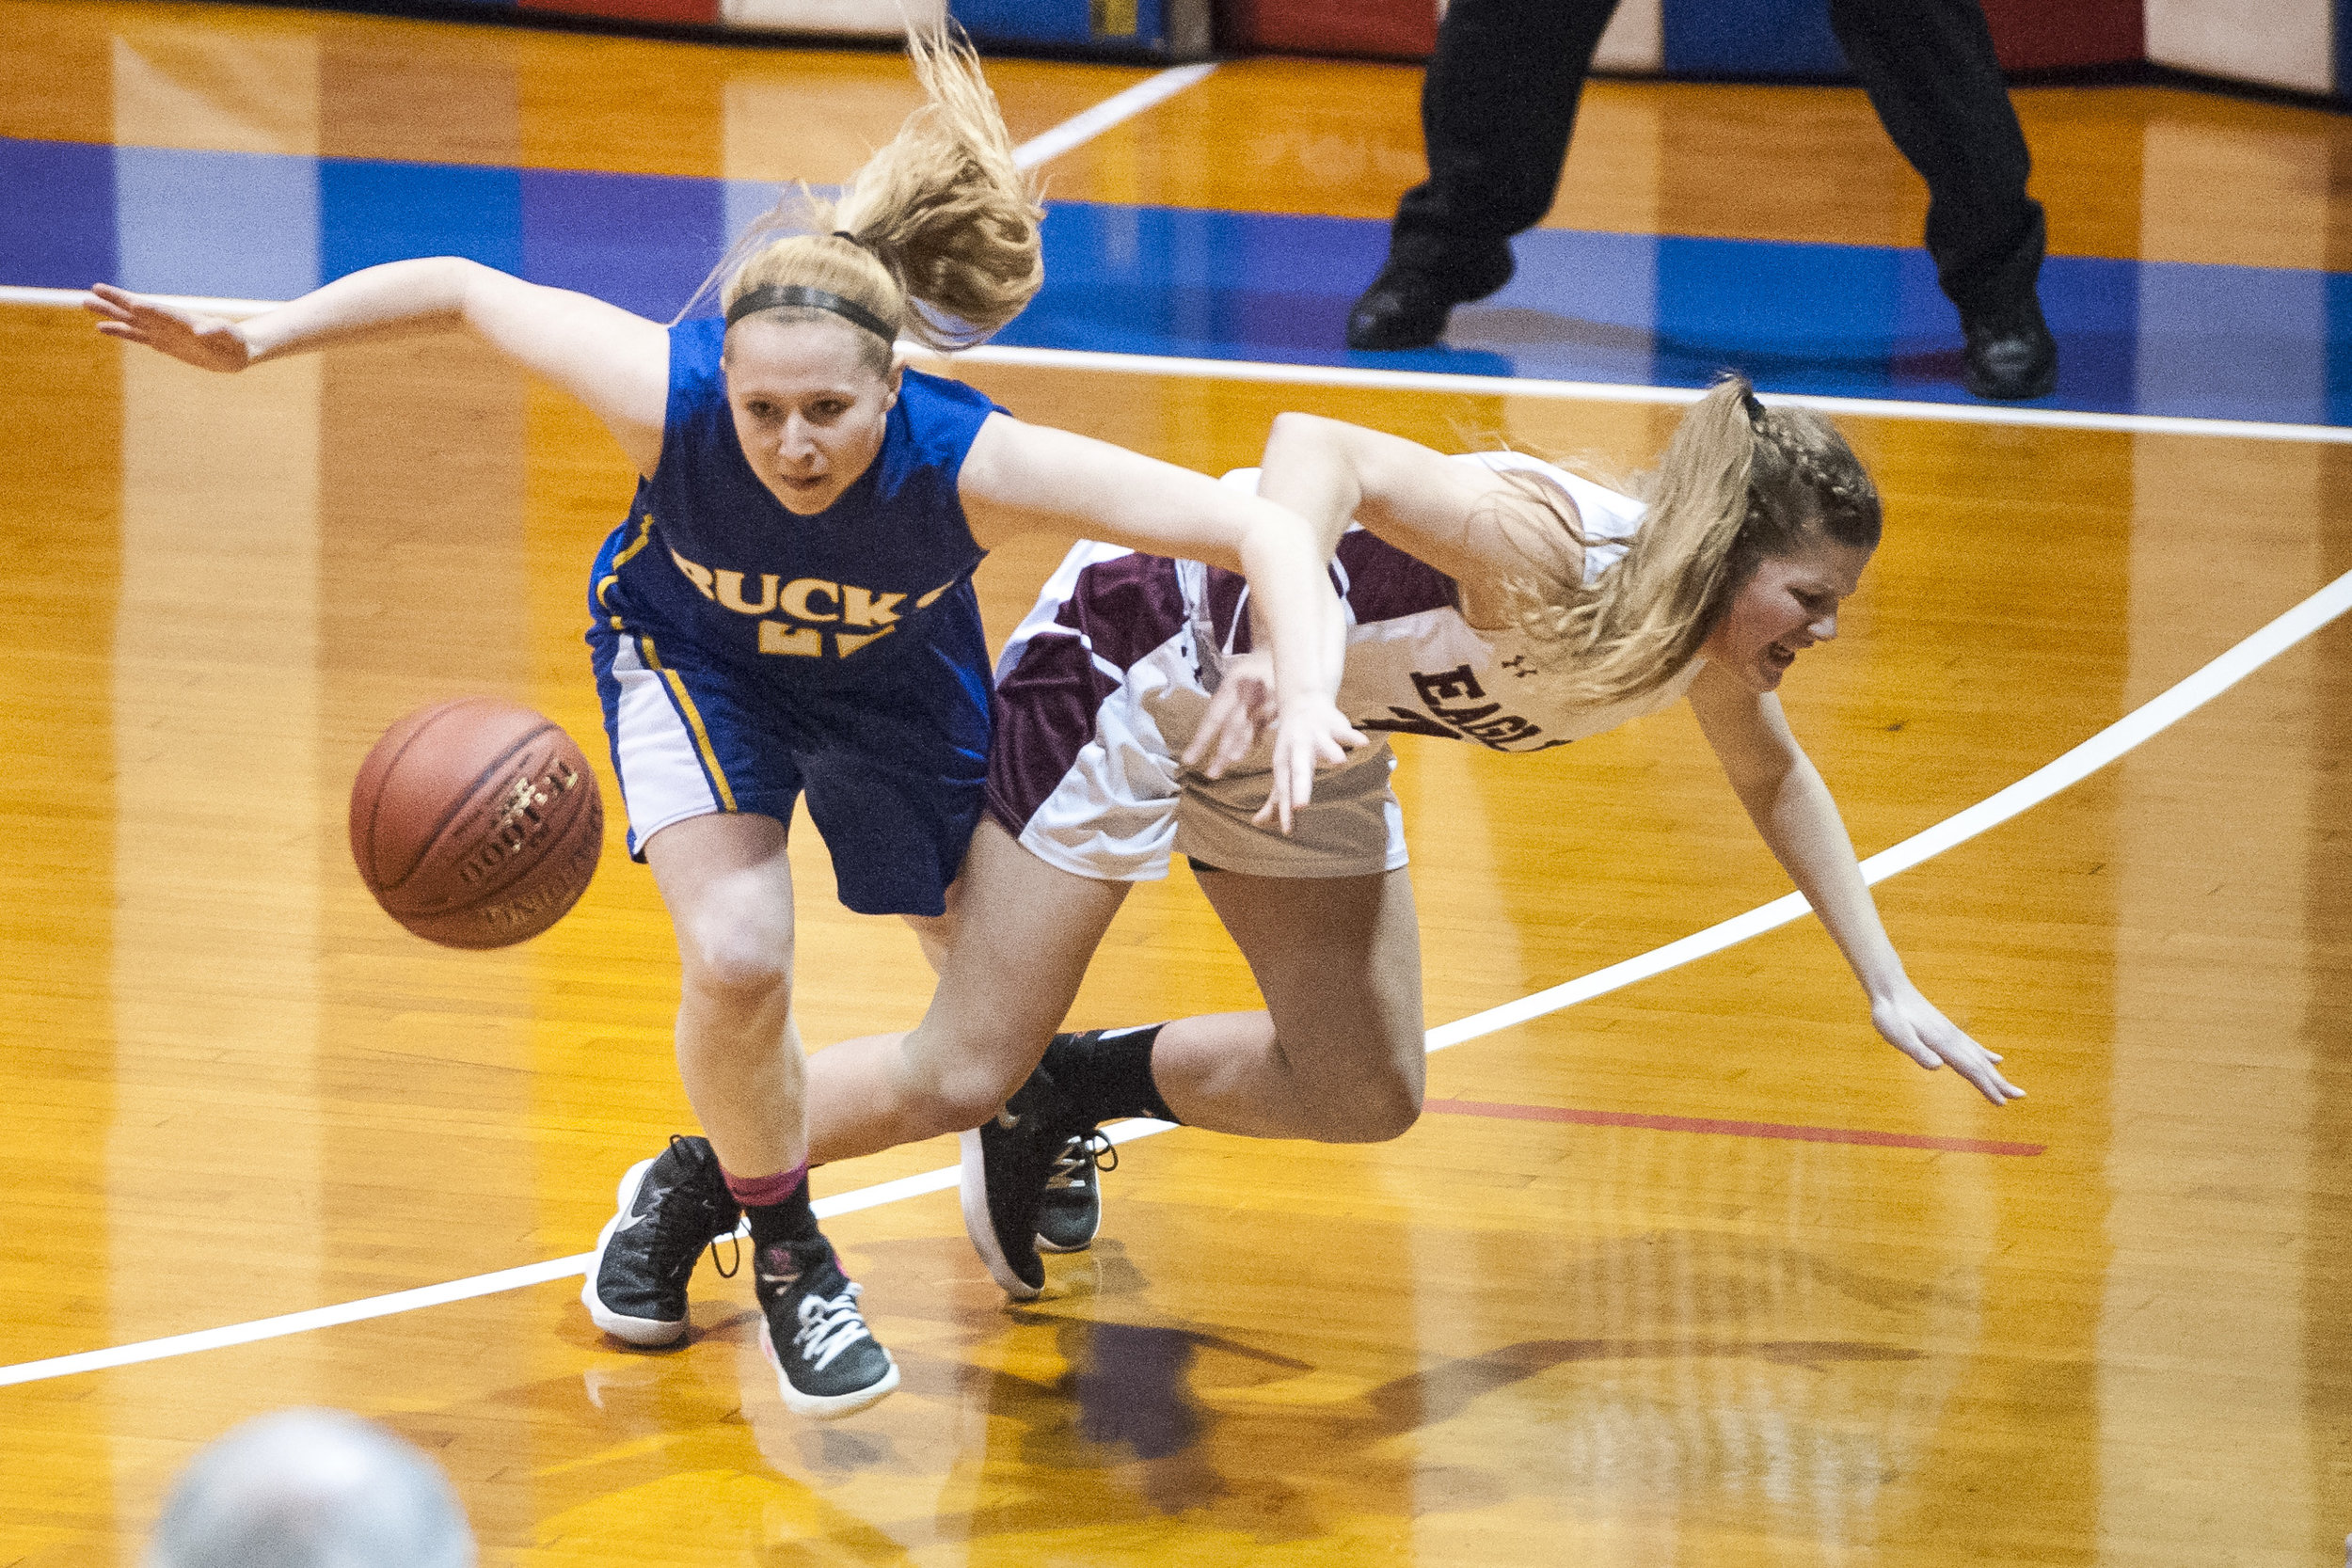 Blue Mountain Union's junior Annie Dennis (L) battles Arlington junior Kierstyn Hess (R) for a loose ball at the Barre Auditorium on Monday, March 5th 2018.